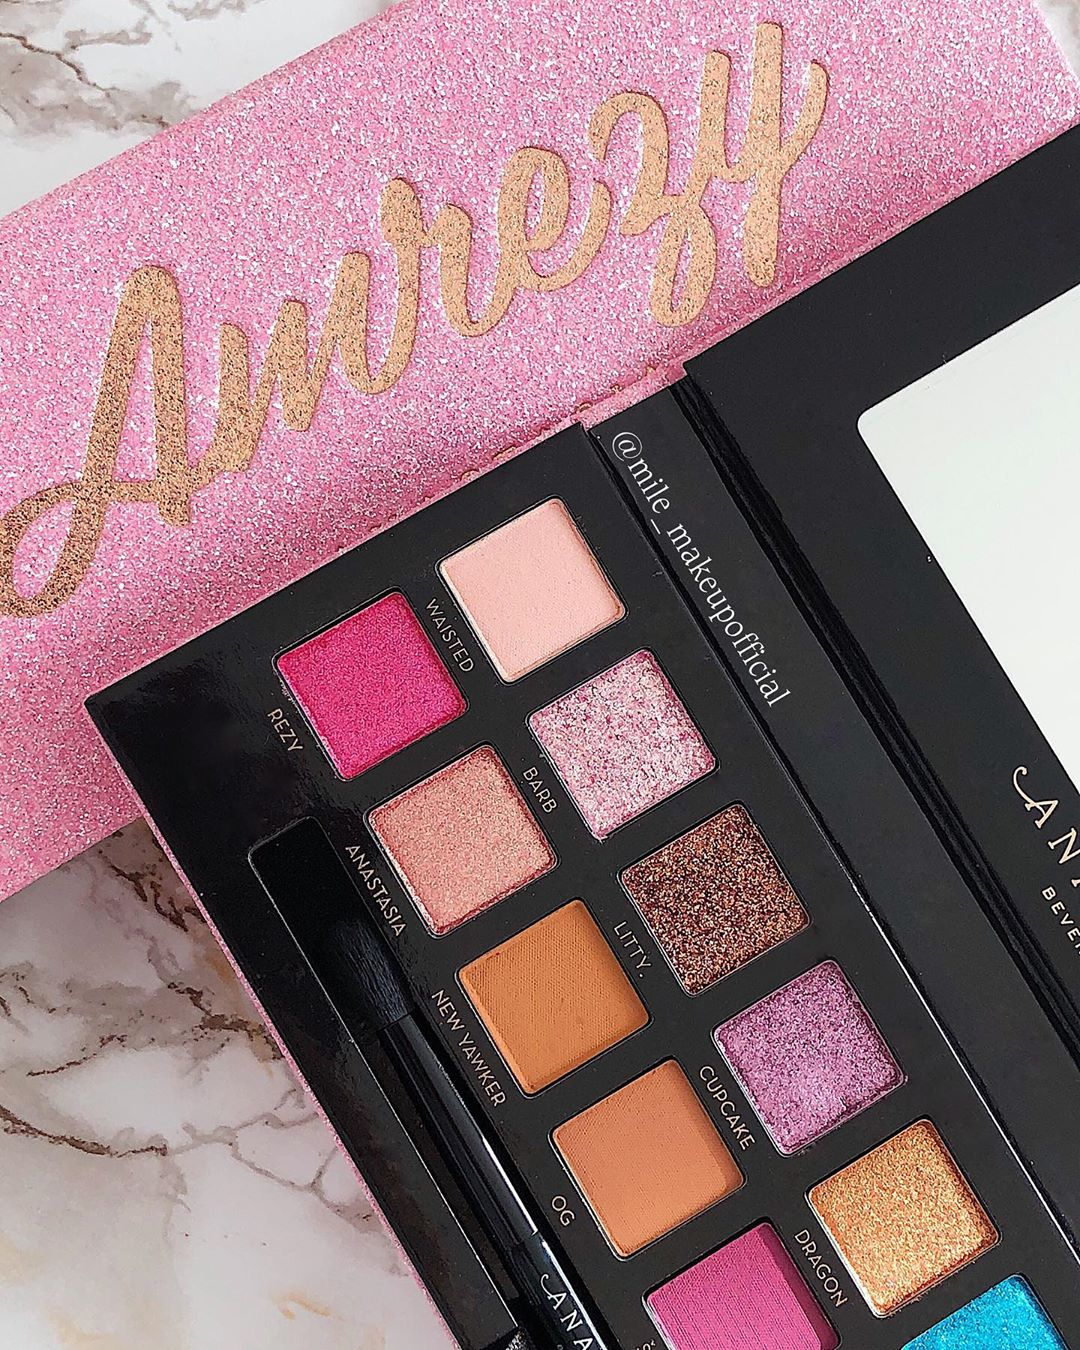 ✨𝕊𝕙𝕚𝕟𝕖 𝕓𝕣𝕚𝕘𝕙𝕥 𝕝𝕚𝕜𝕖 𝔸𝕞𝕣 Amrezy - Makeup Products